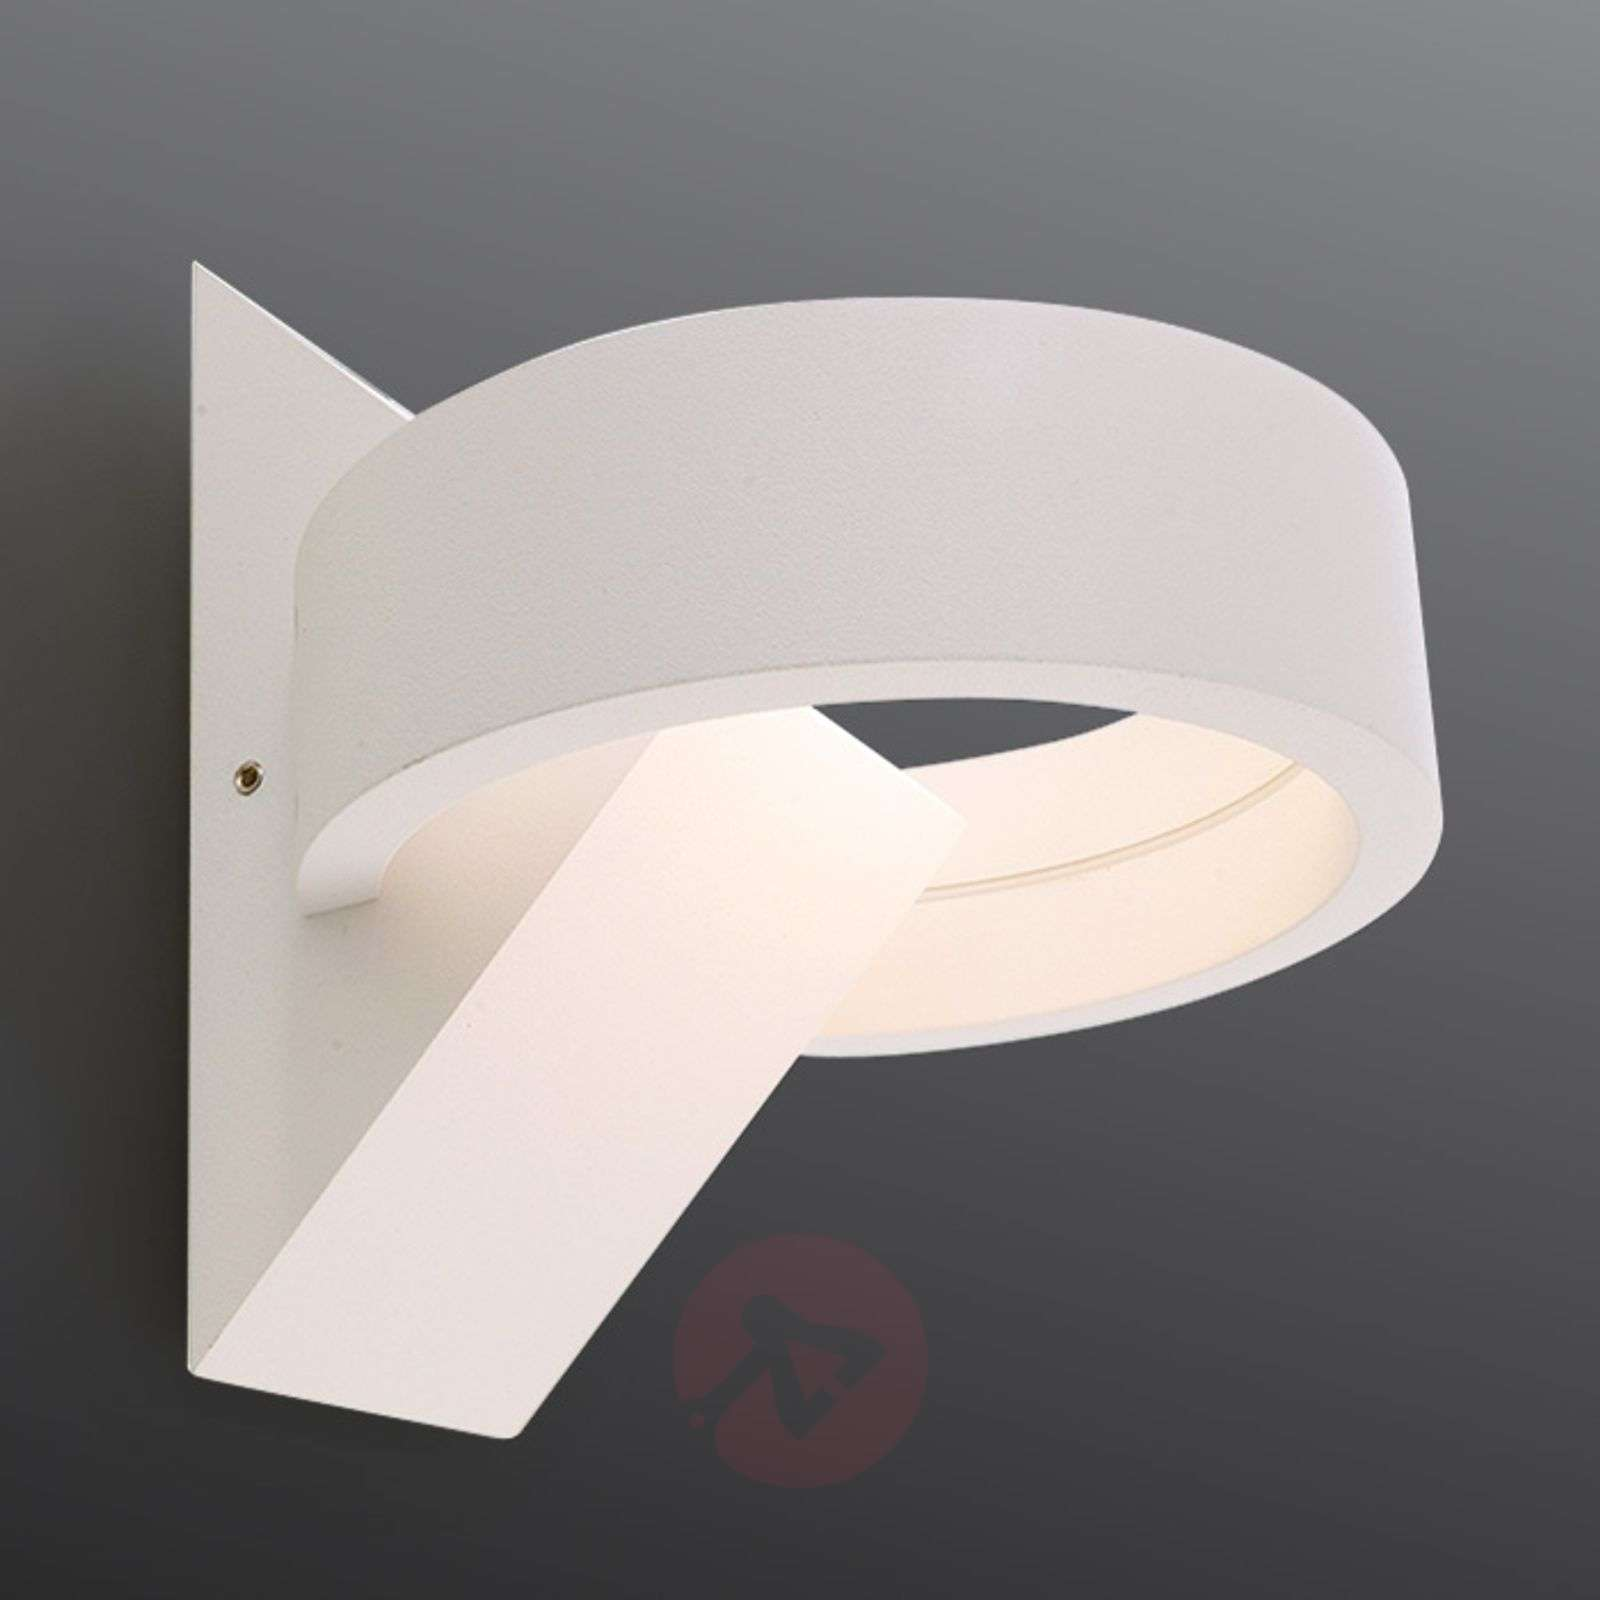 Applique murale LED Gracie en blanc-2500066-01